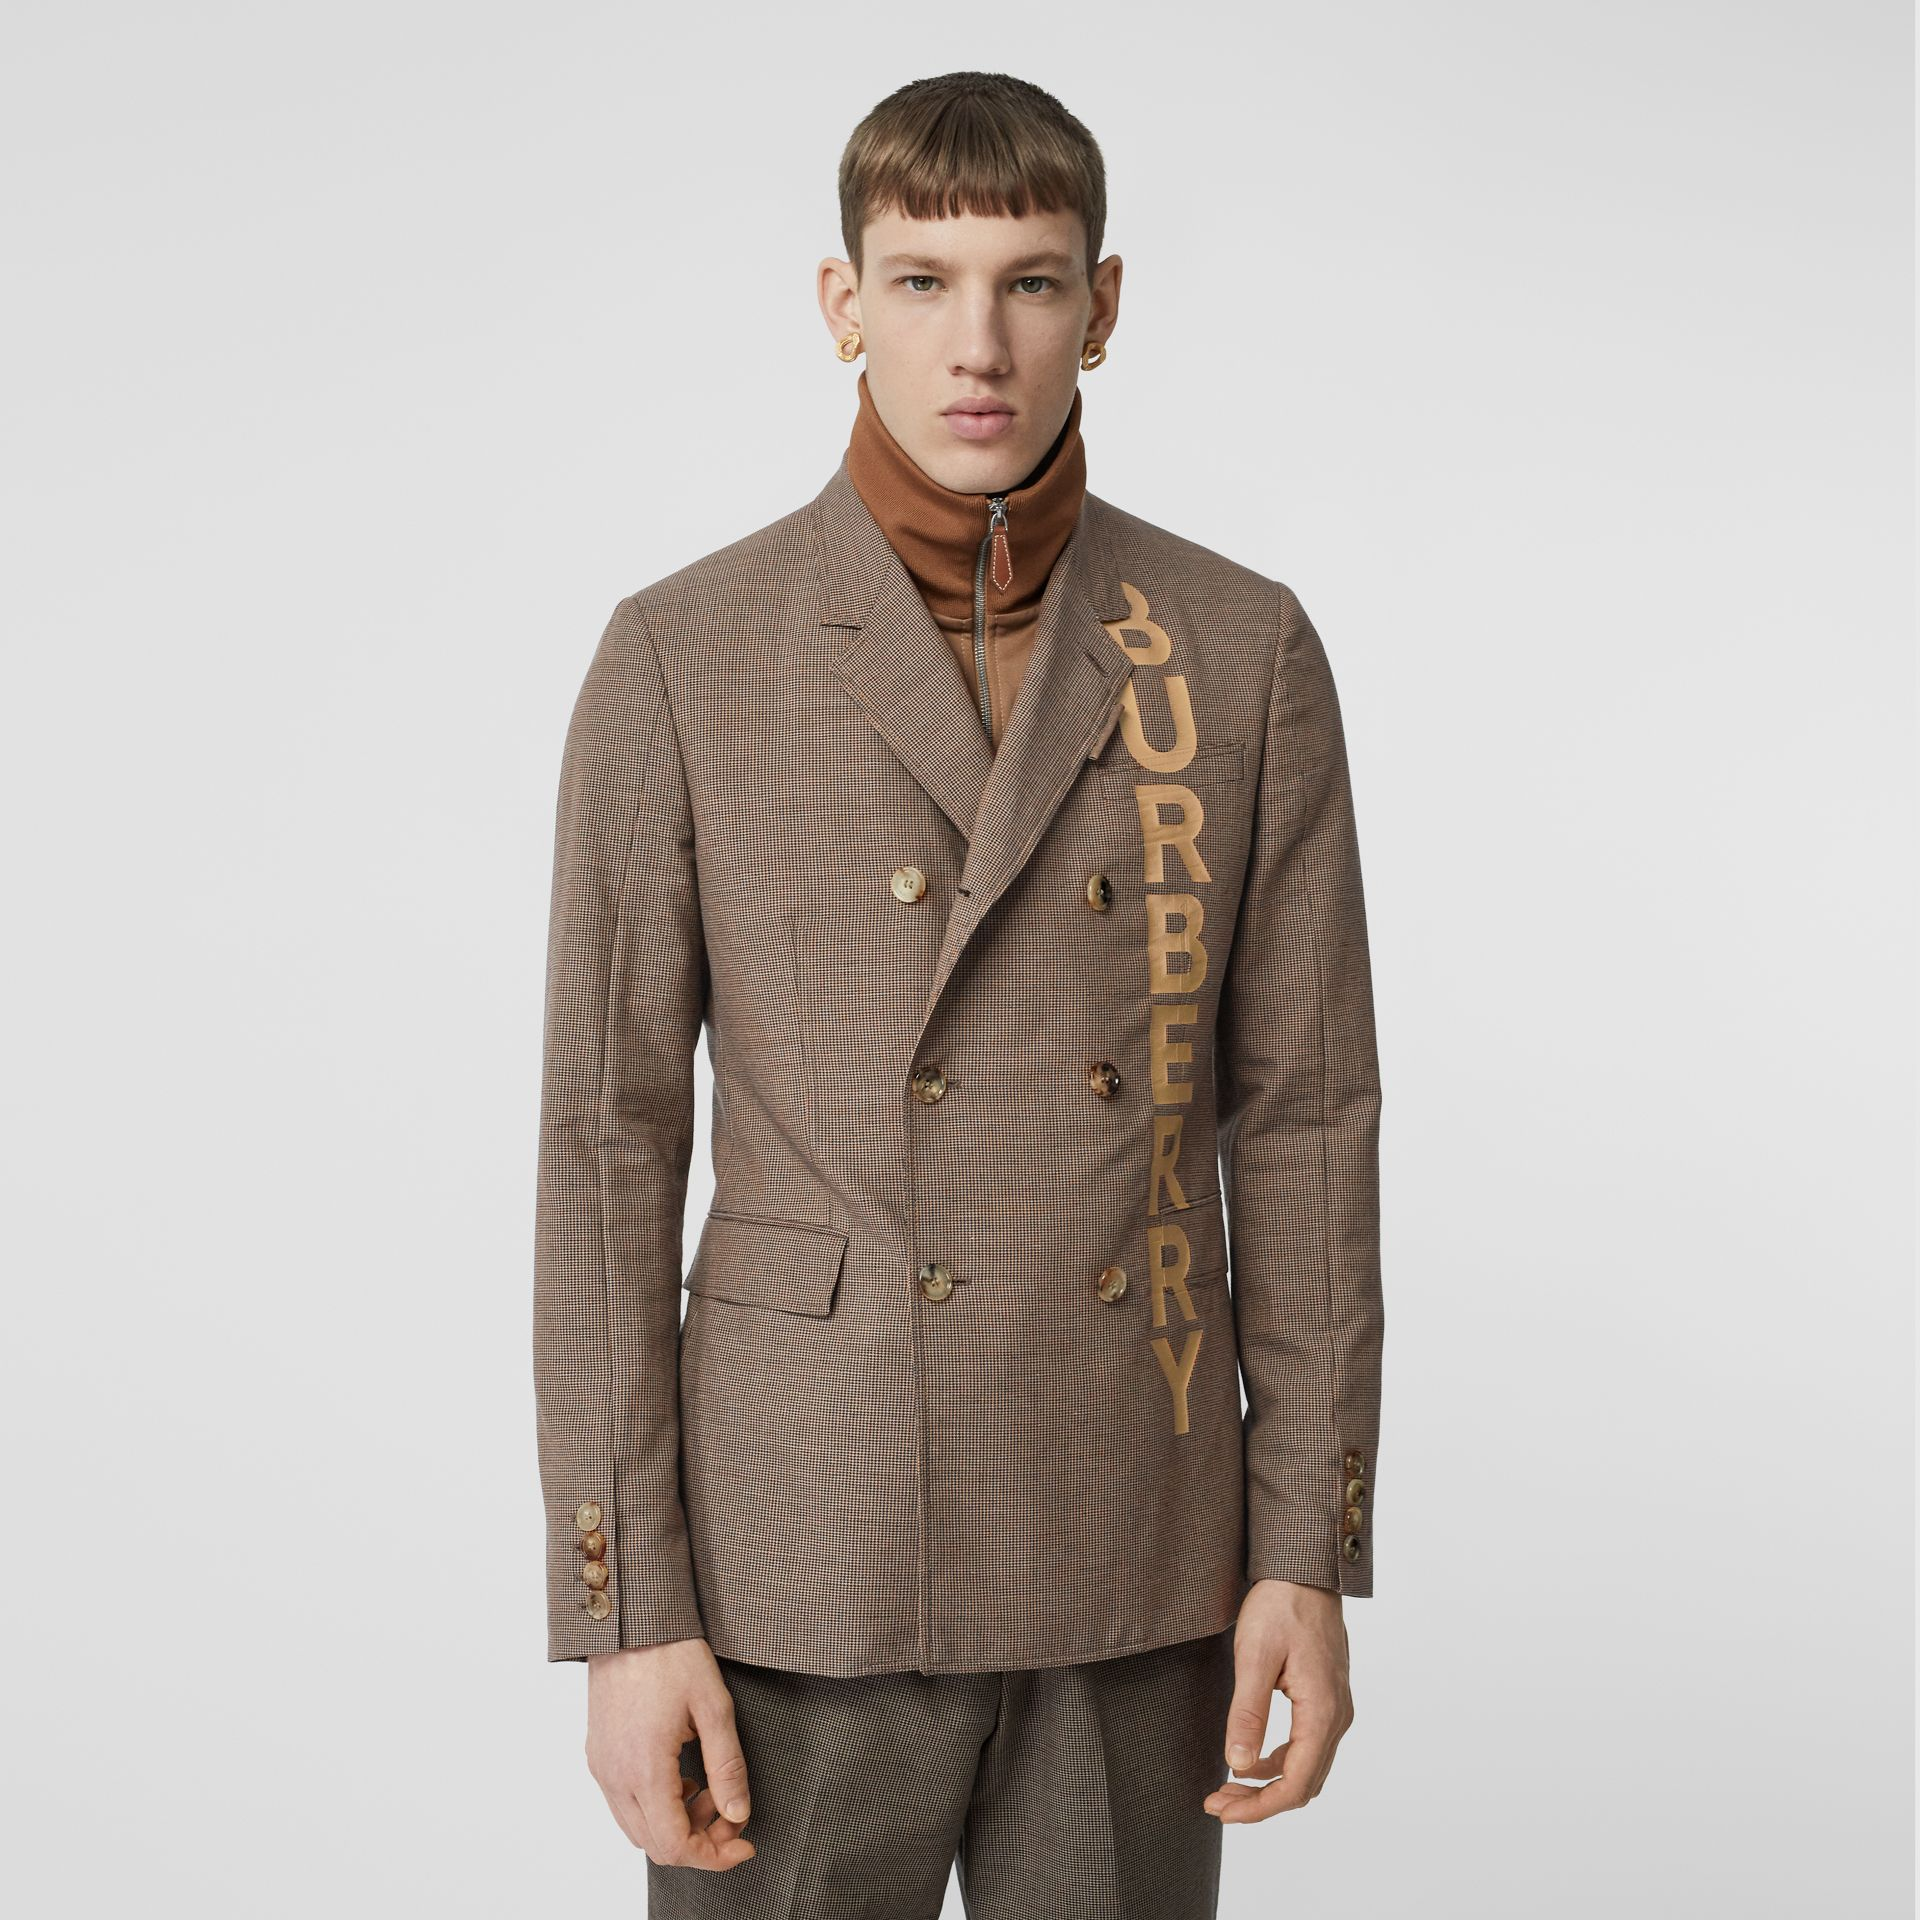 Slim Fit Logo Print Cotton Wool Blend Tailored Jacket in Beige - Men | Burberry United Kingdom - gallery image 5